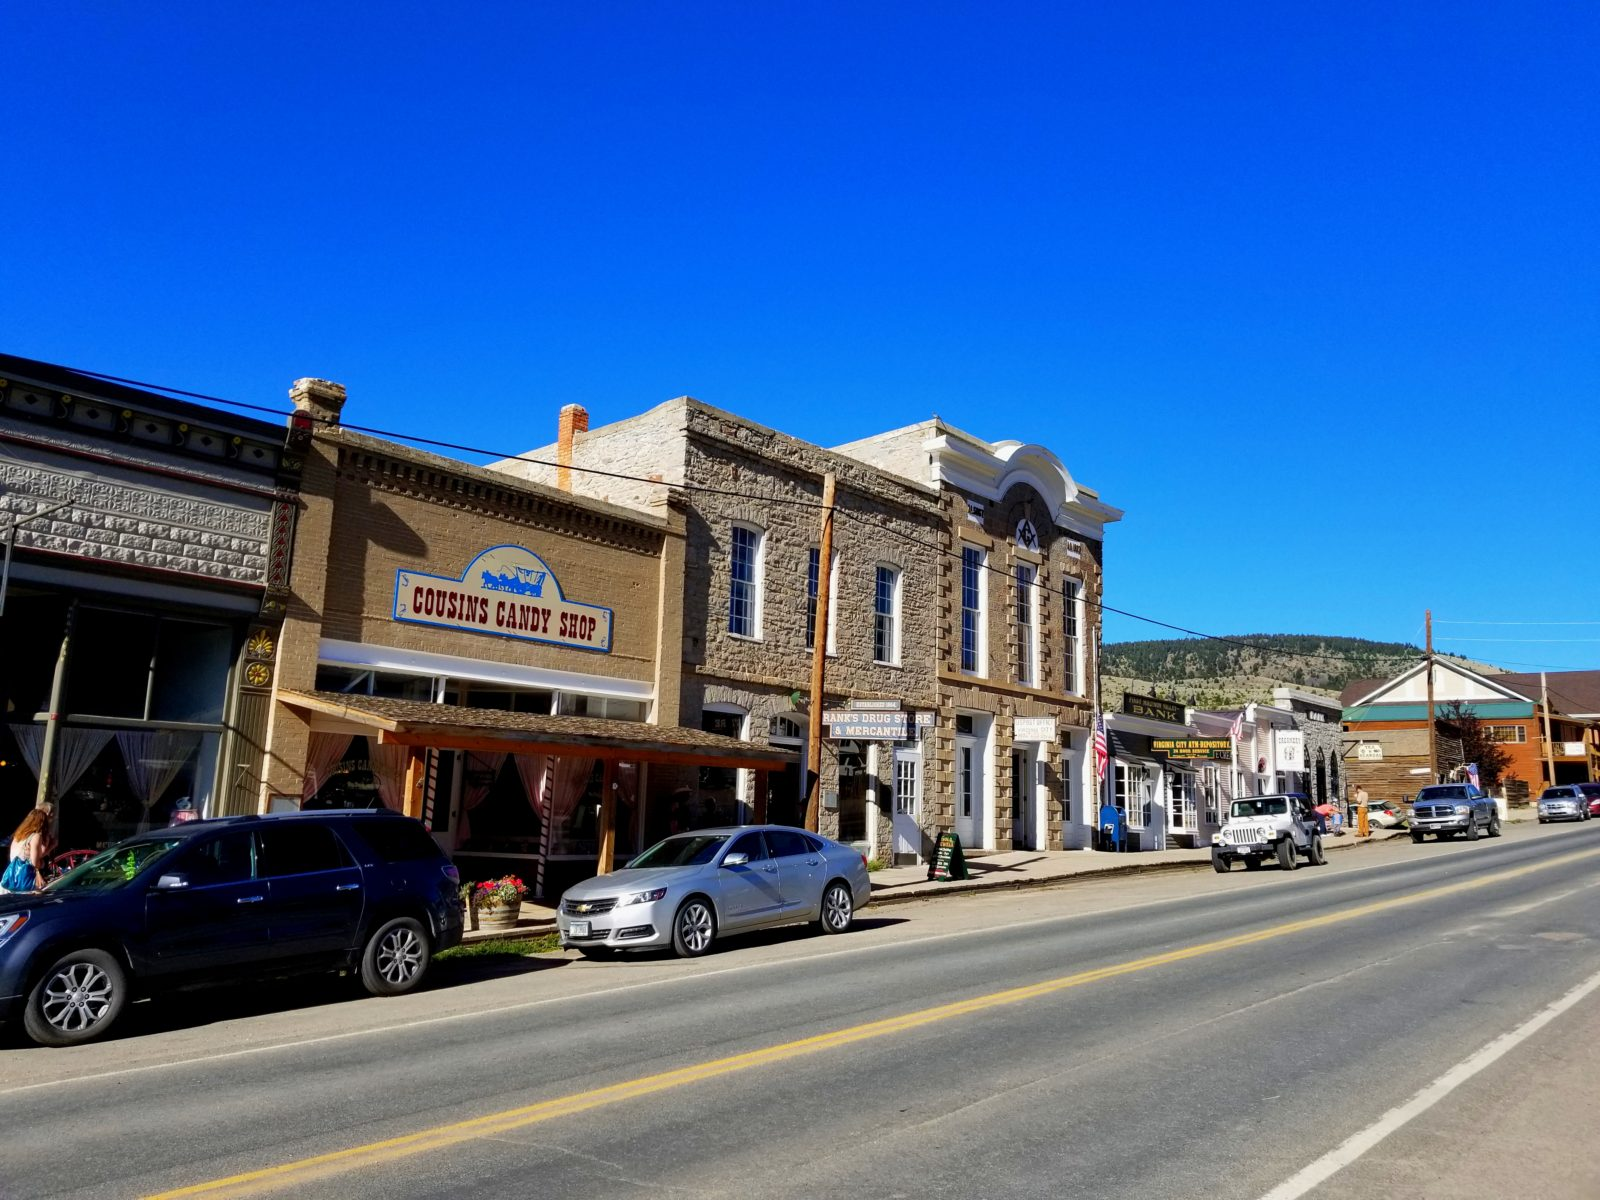 The main drag in Virginia City, a Southwest Montana ghost town, try the Huckleberry ice cream!